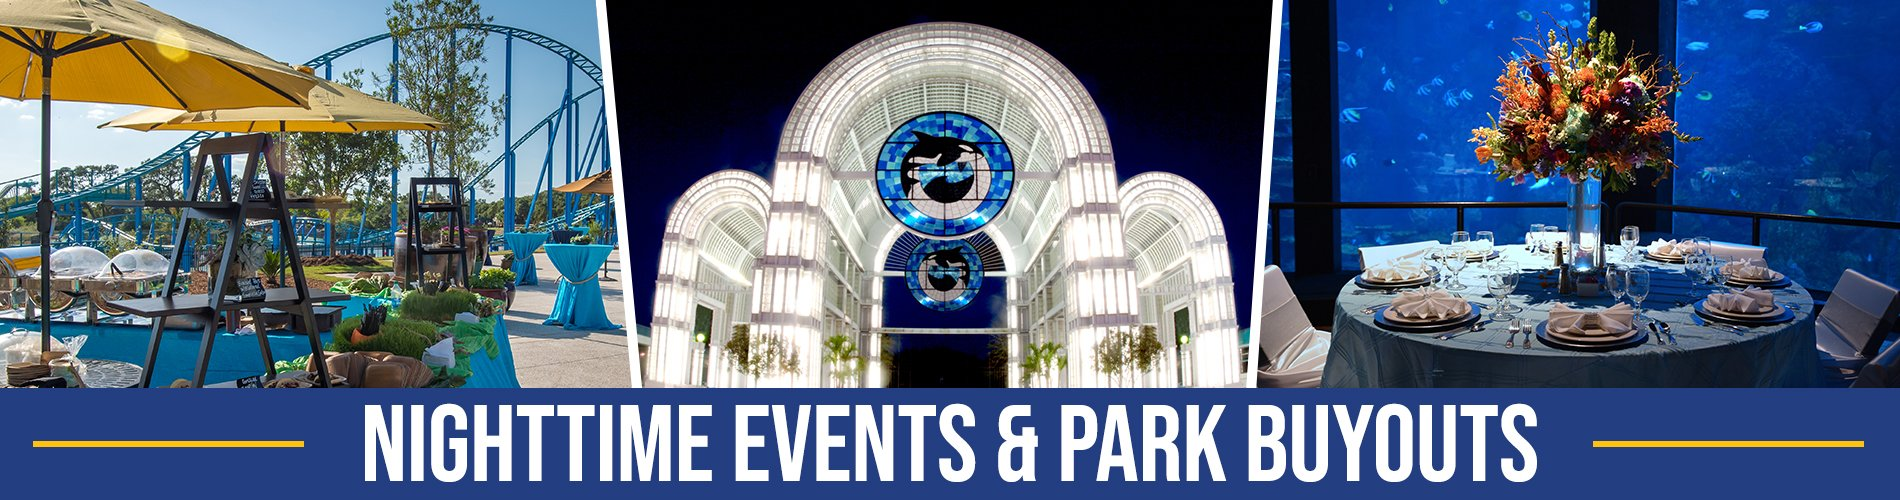 Group events at seaworld san antonio